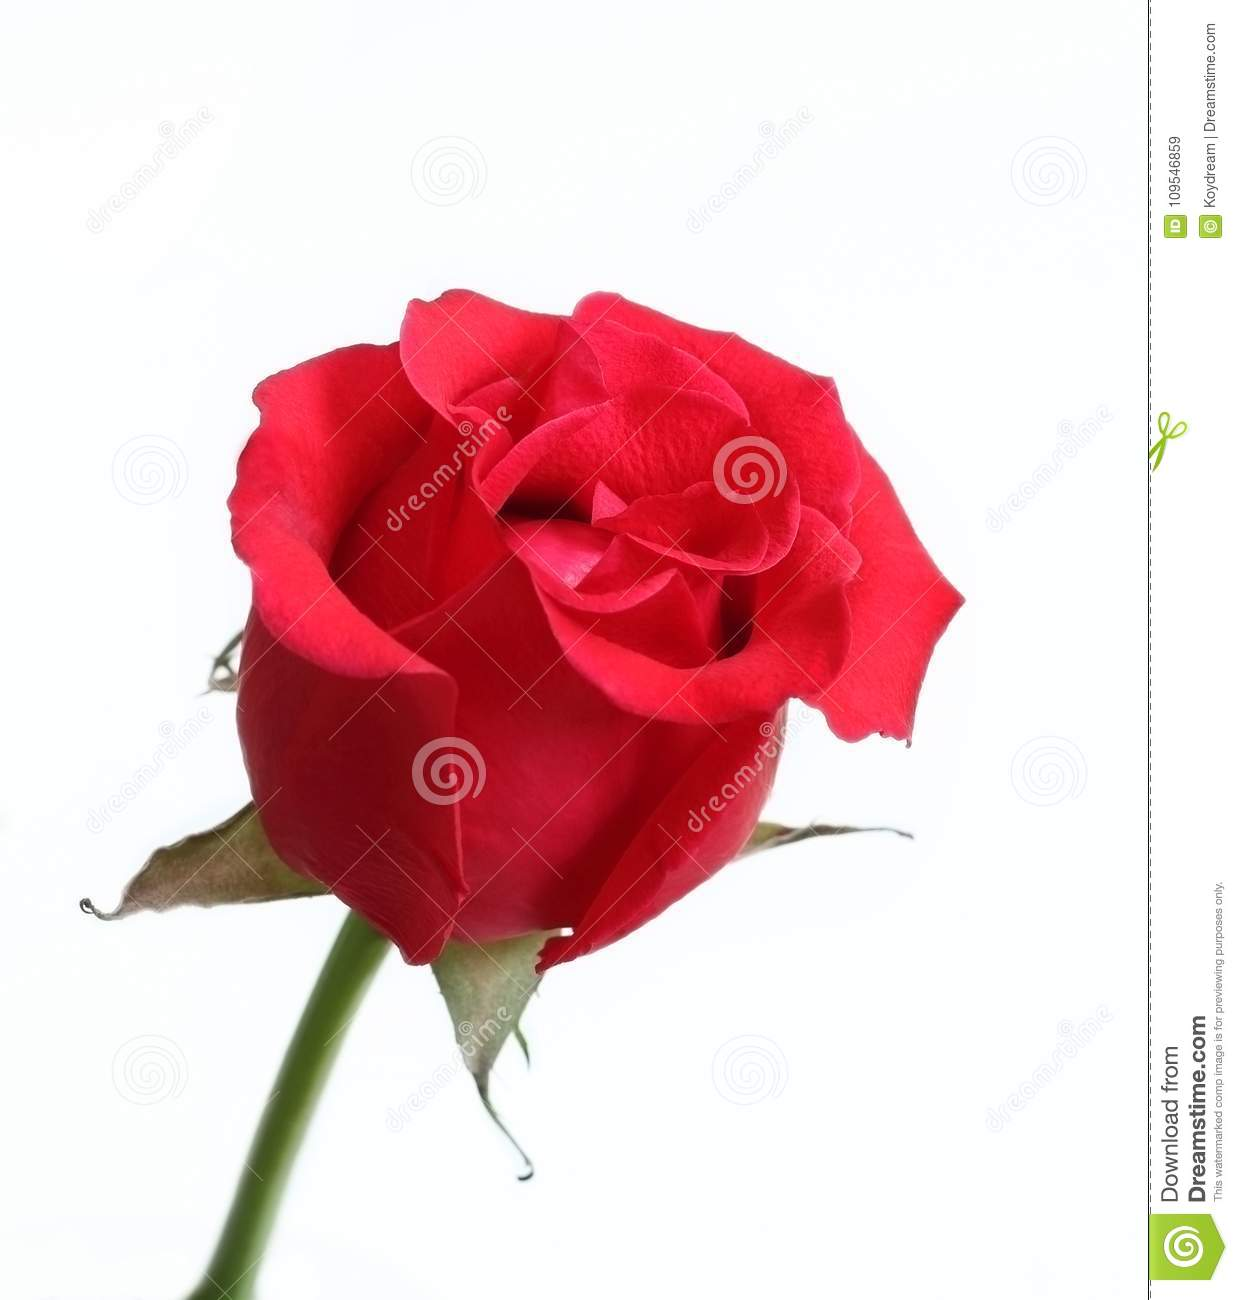 Rose Red Color Flower On White Background. Stock Image - Image of ...